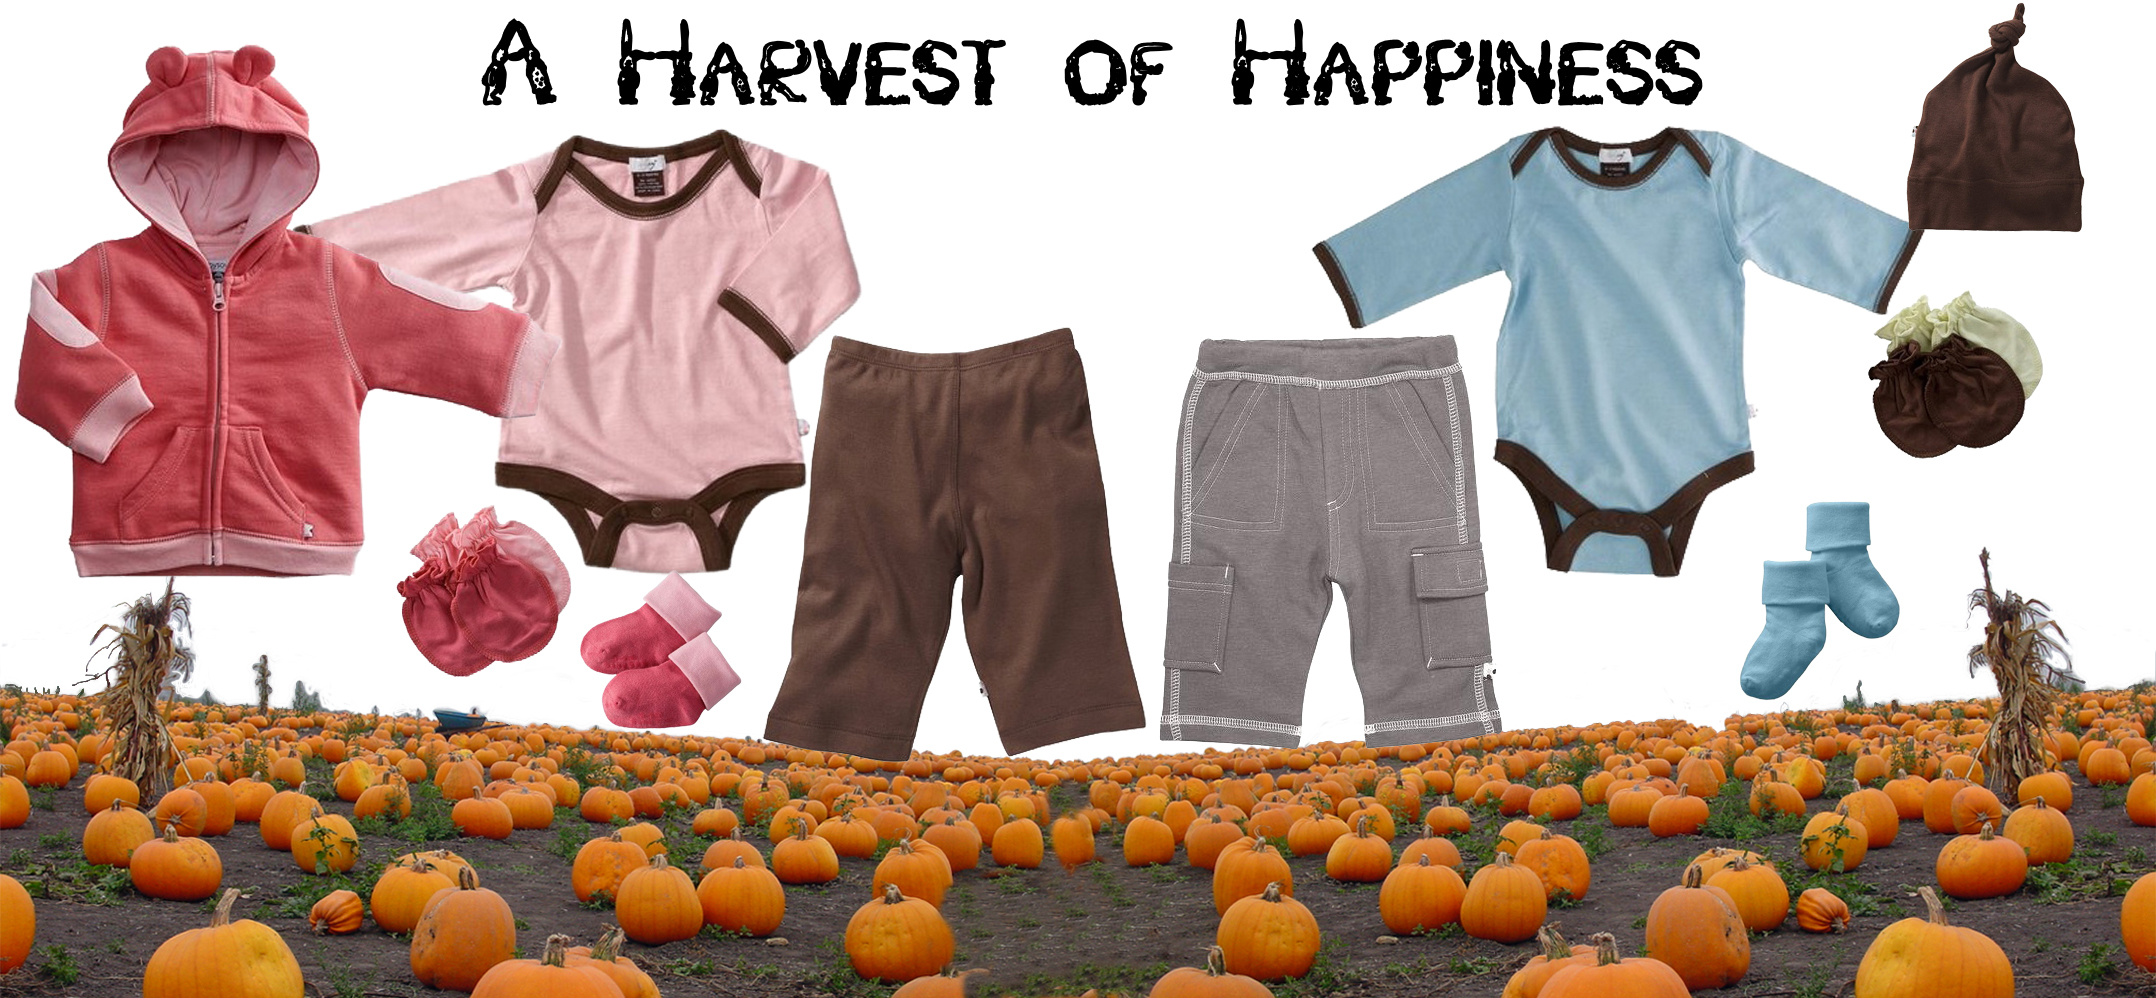 A Harvest of Happiness Collage